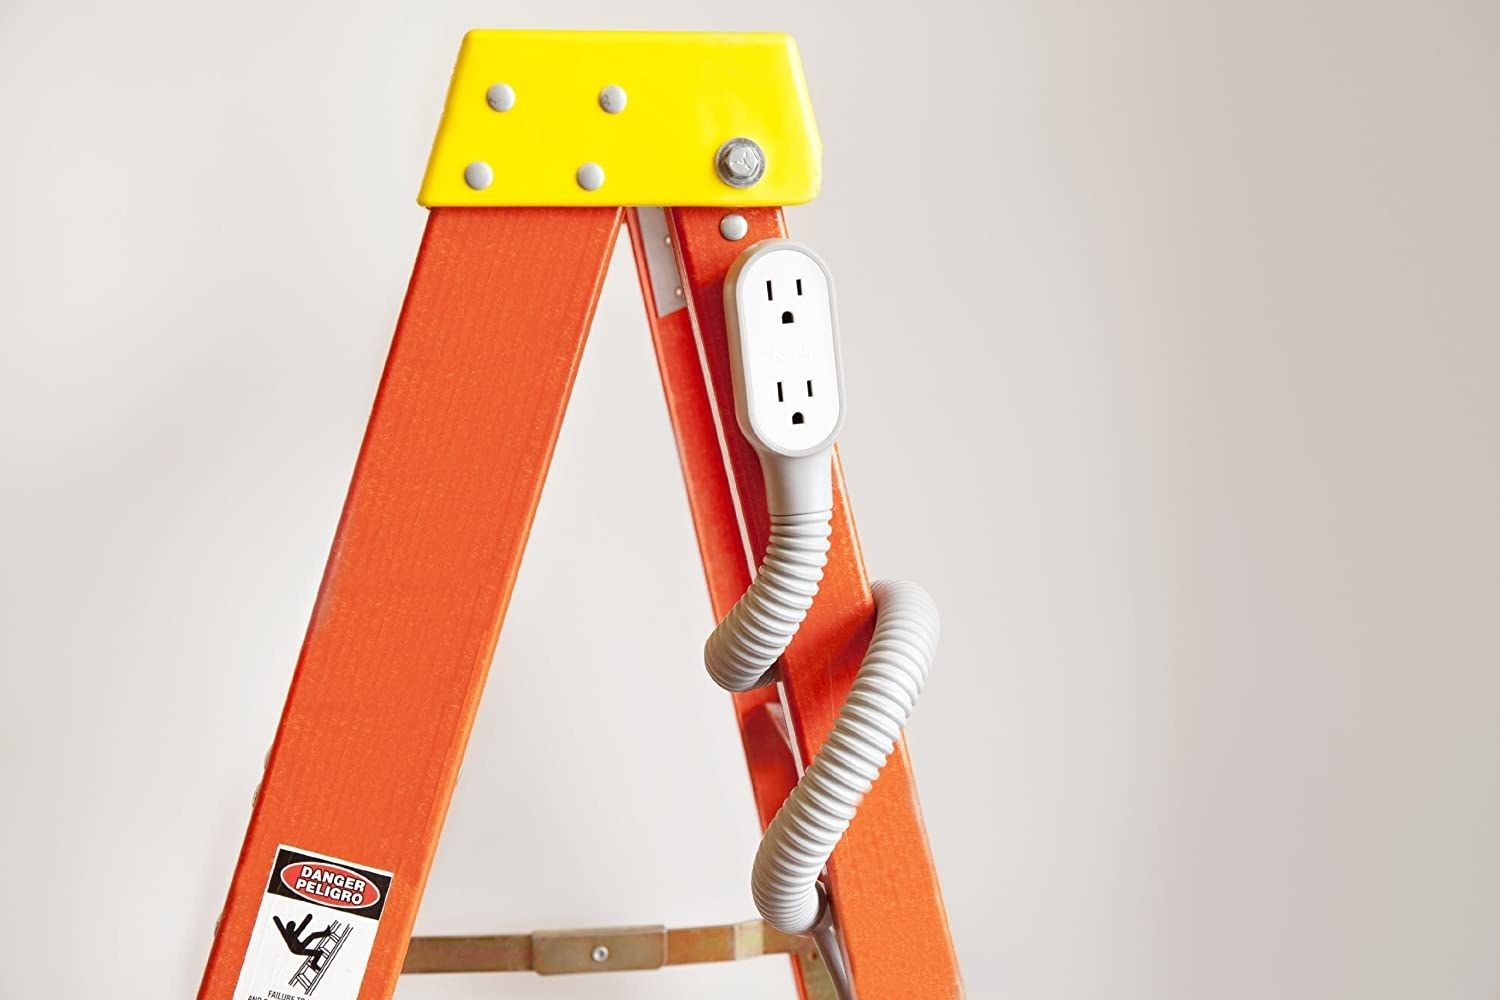 The extension cord wrapped around a ladder